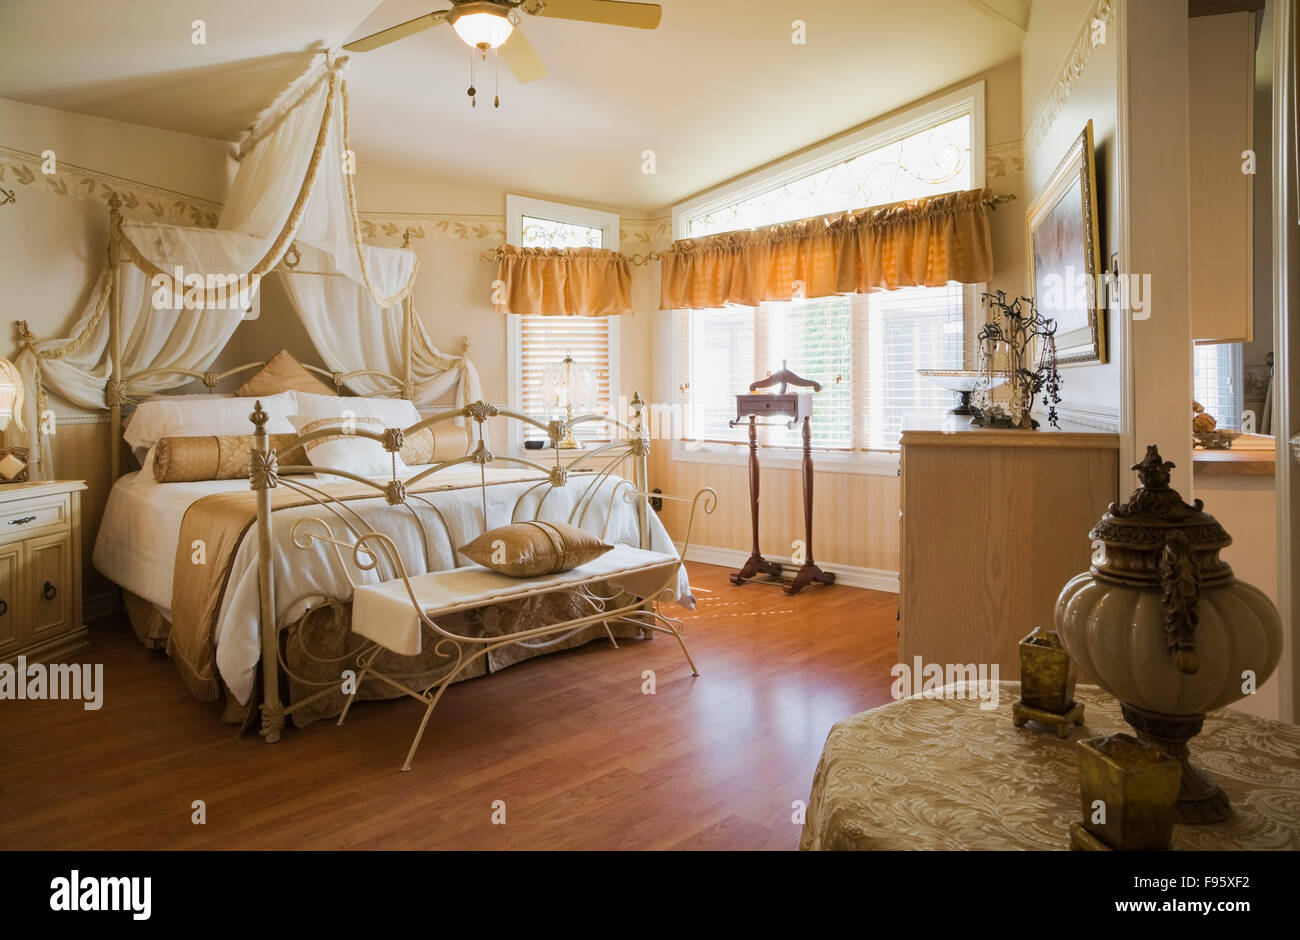 Antique Queen Size Bed With Elaborately Designed Wroughtiron Stock Photo Alamy